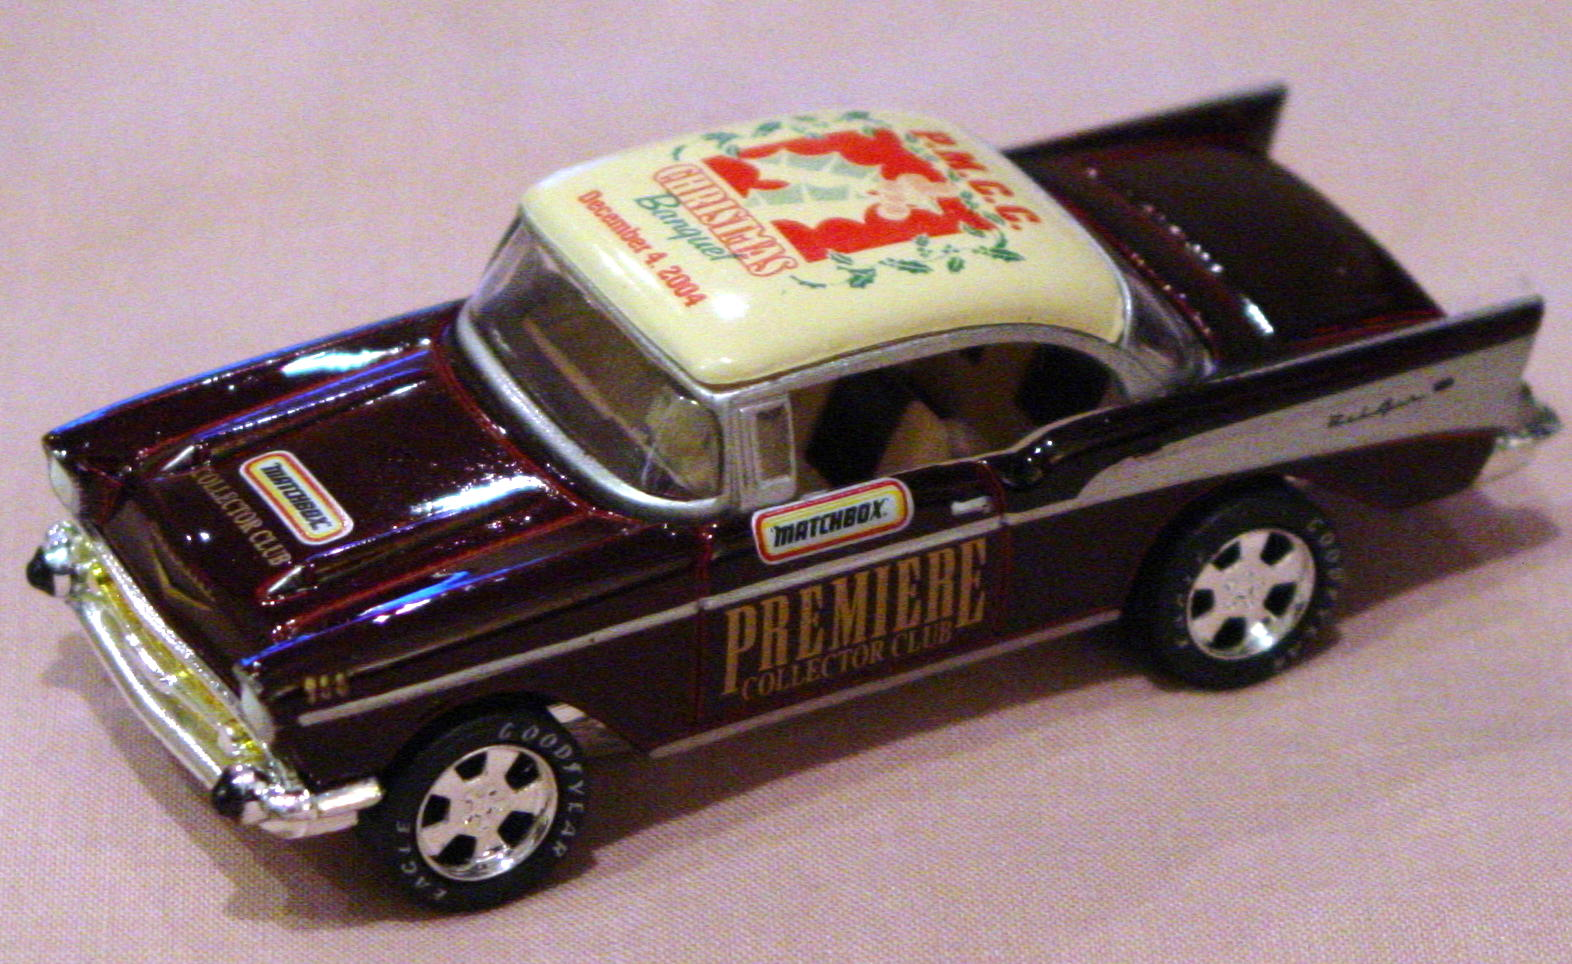 ASAP-CCI 31 L - 57 Chevy Bel Air Maroon and cream PMCC Christmas 2004